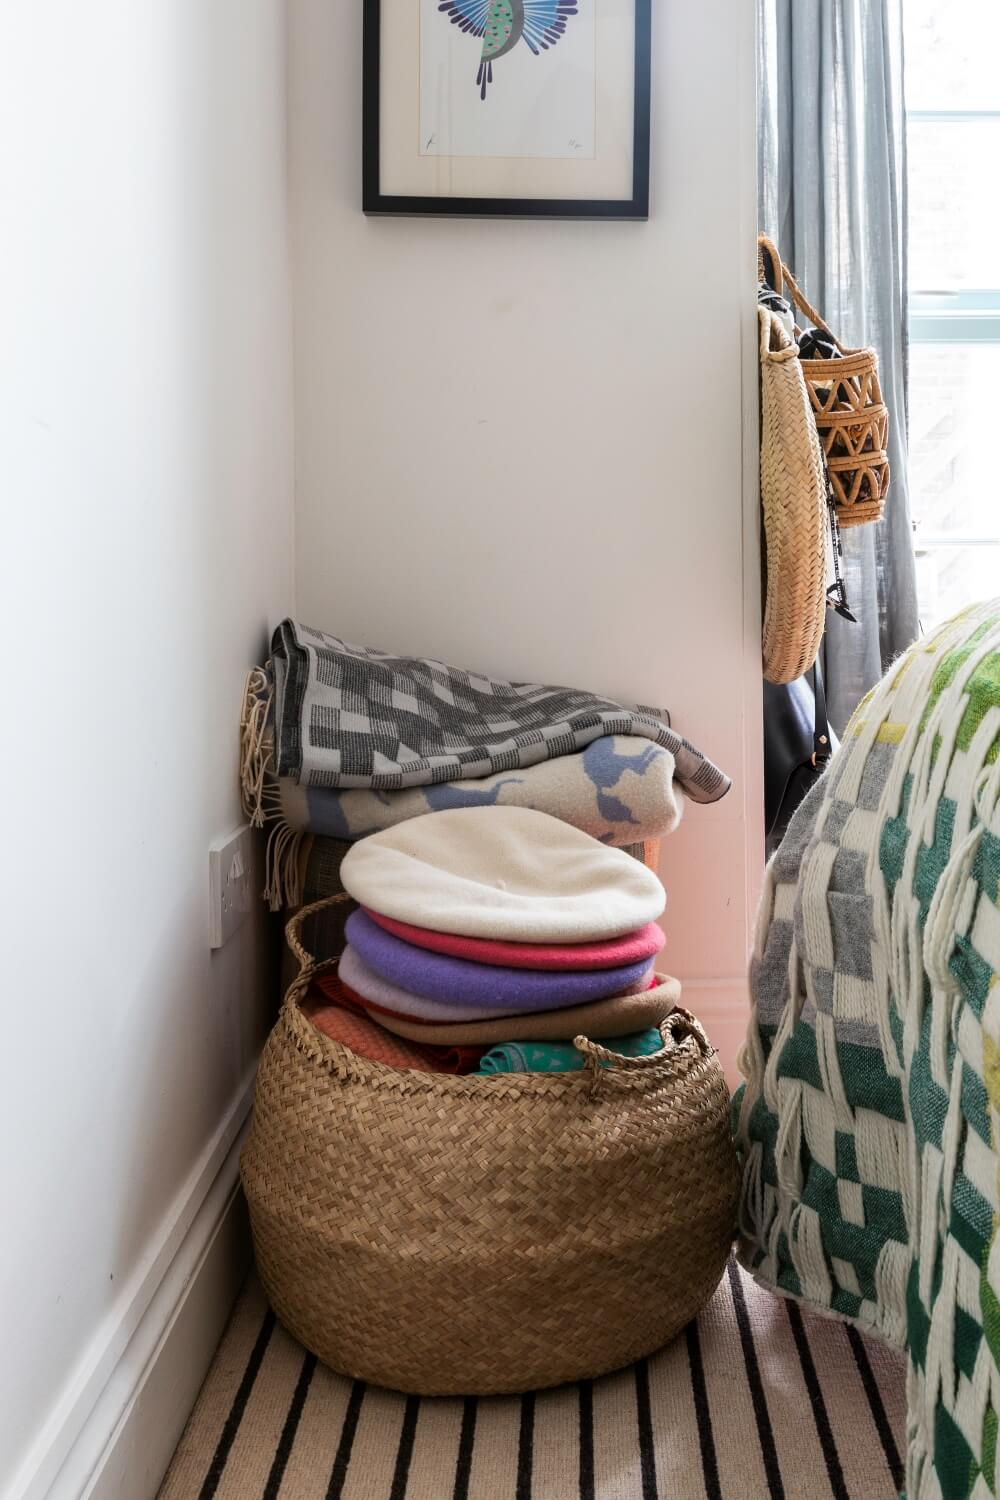 Small basket of hats next to the end of the bed for additional storage